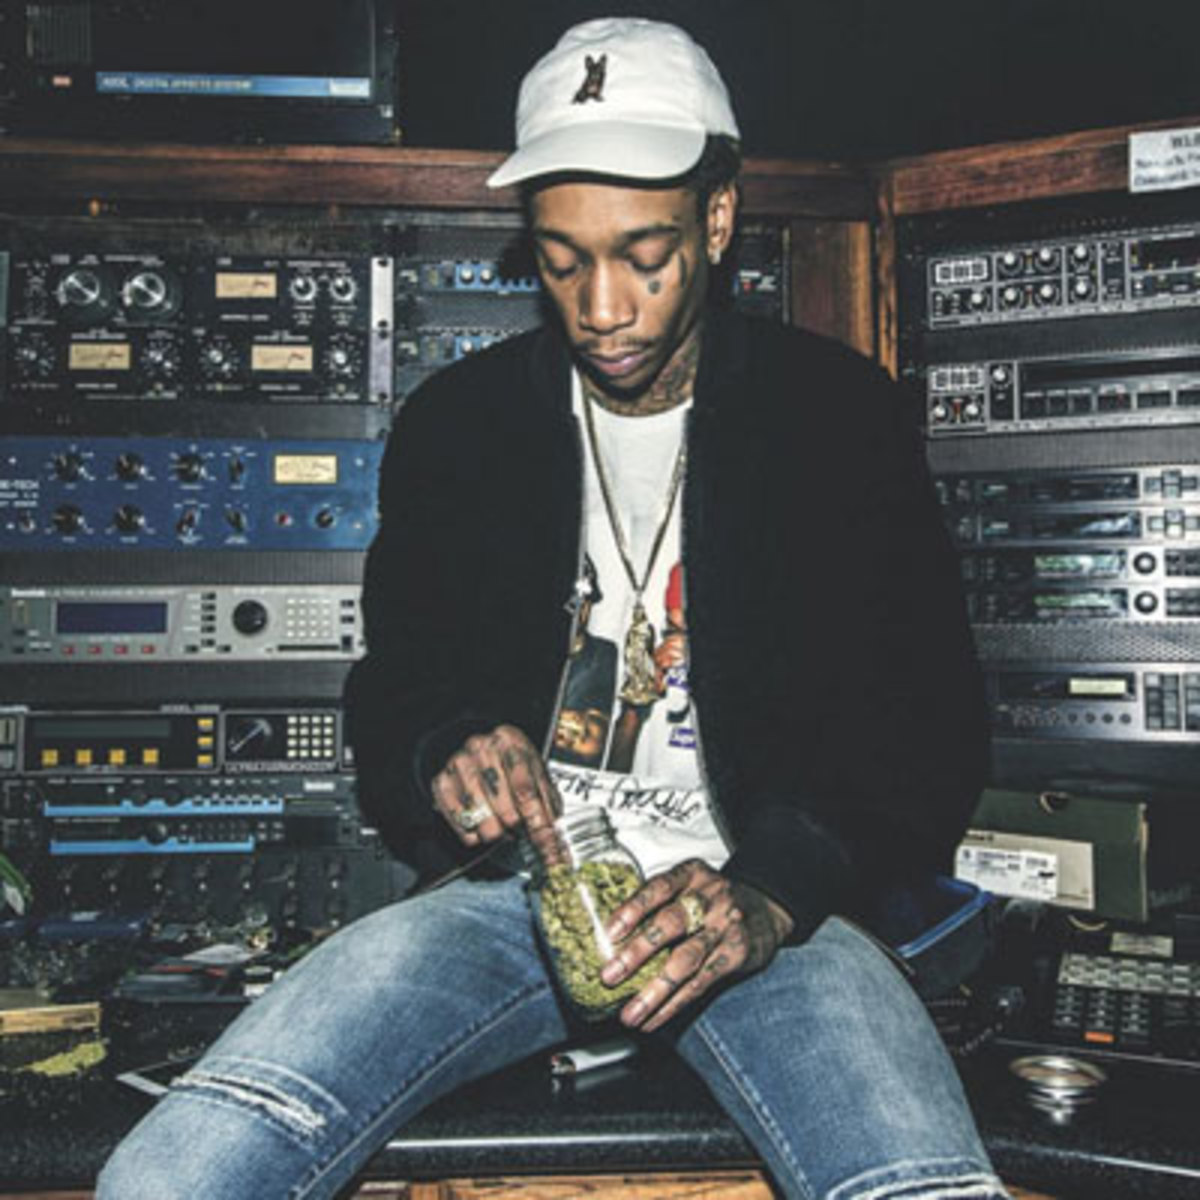 wiz-khalifa-cabin-fever-3-cheat.jpg